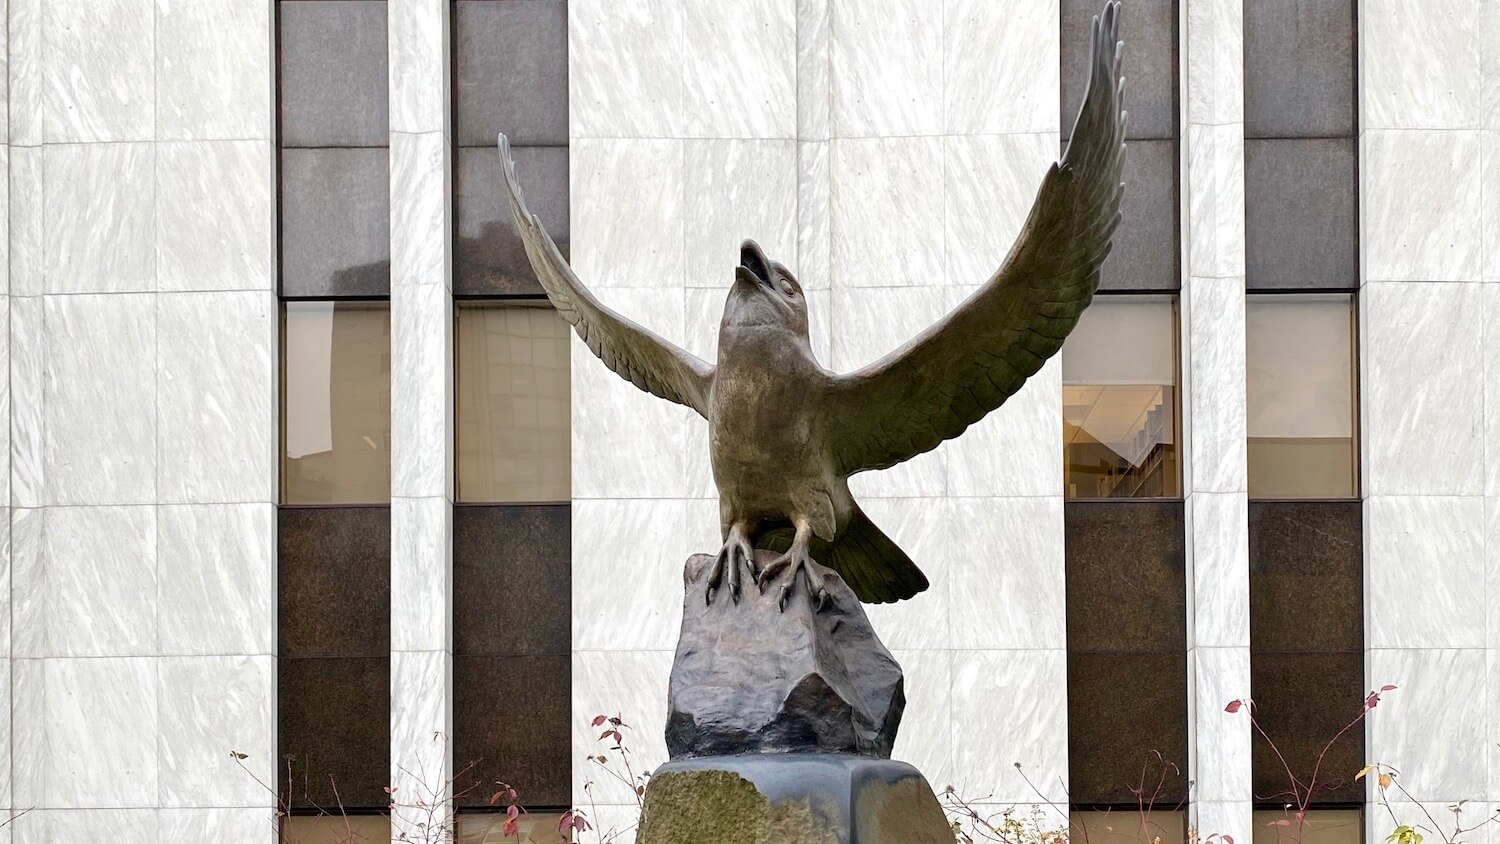 A bronze raven looks up to the sky with wings in full flap of flight. This art installment is located near the entrance to a white marble building on the campus of Seattle University.